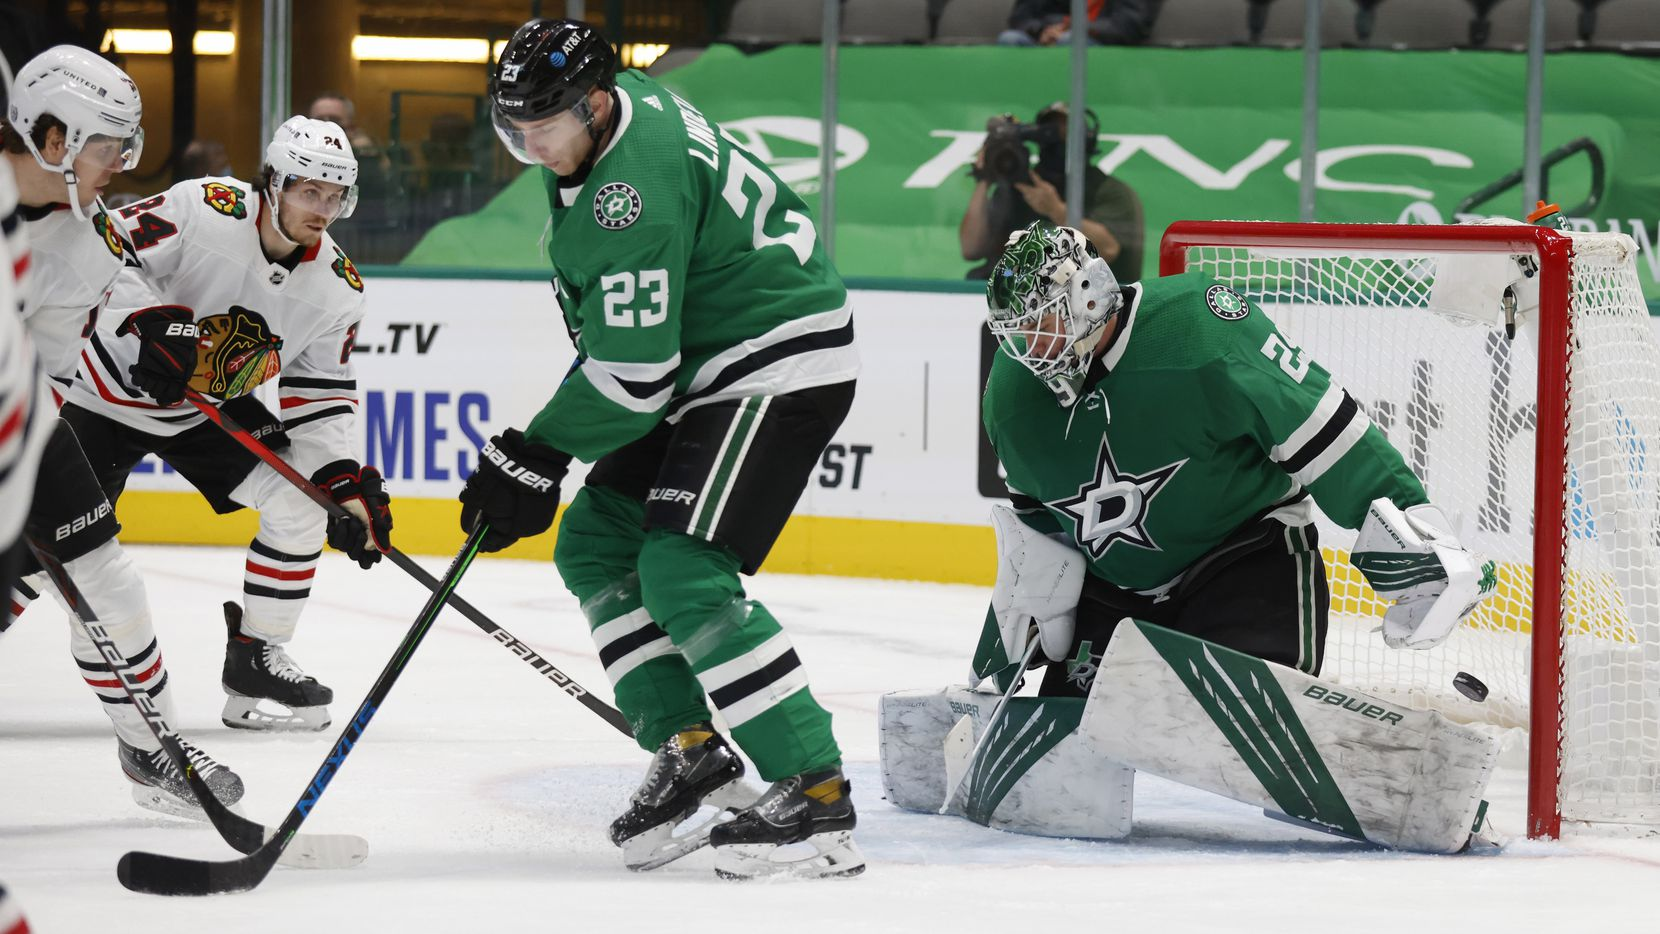 Chicago Blackhawks center Mattias Janmark (13) watches as he scores a goal on Dallas Stars goaltender Jake Oettinger (29) in front of Dallas Stars defenseman Esa Lindell (23) during the second period of play at American Airlines Center on Tuesday, February 9, 2021 in Dallas.